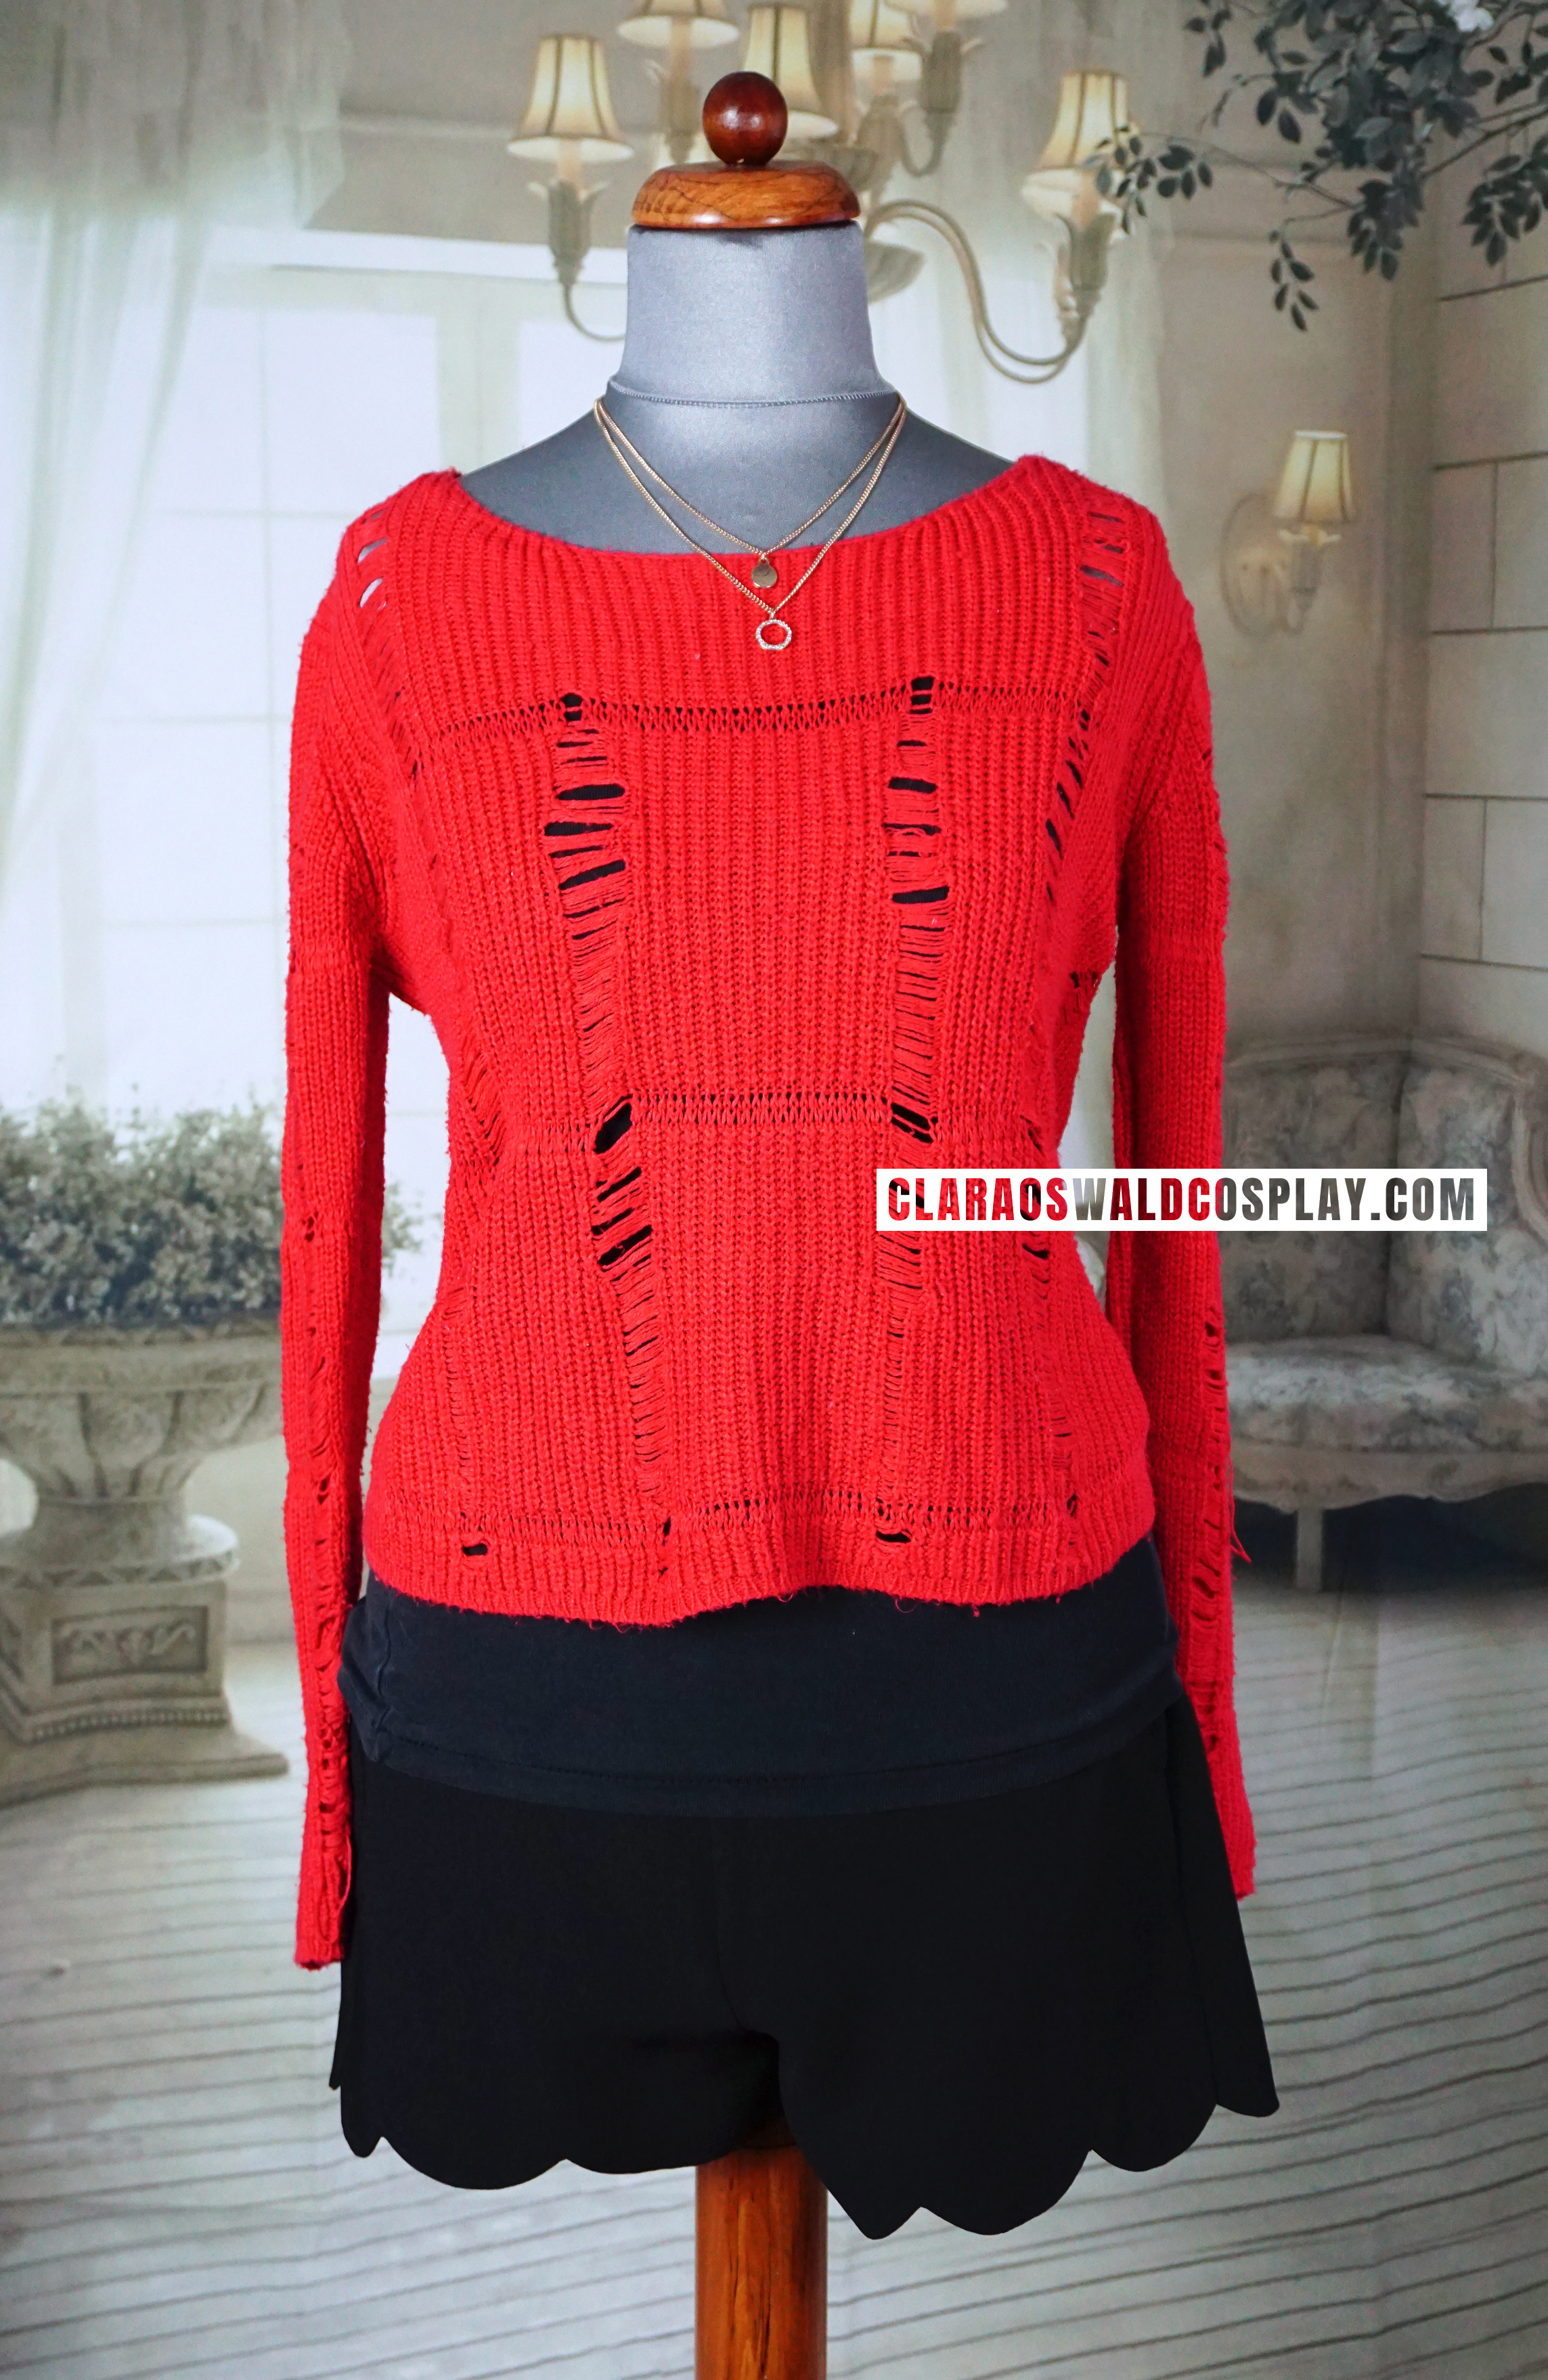 Clara Oswald's gorgeous Topshop Red Ladder Stitch Jumper as seen in Into The Dalek